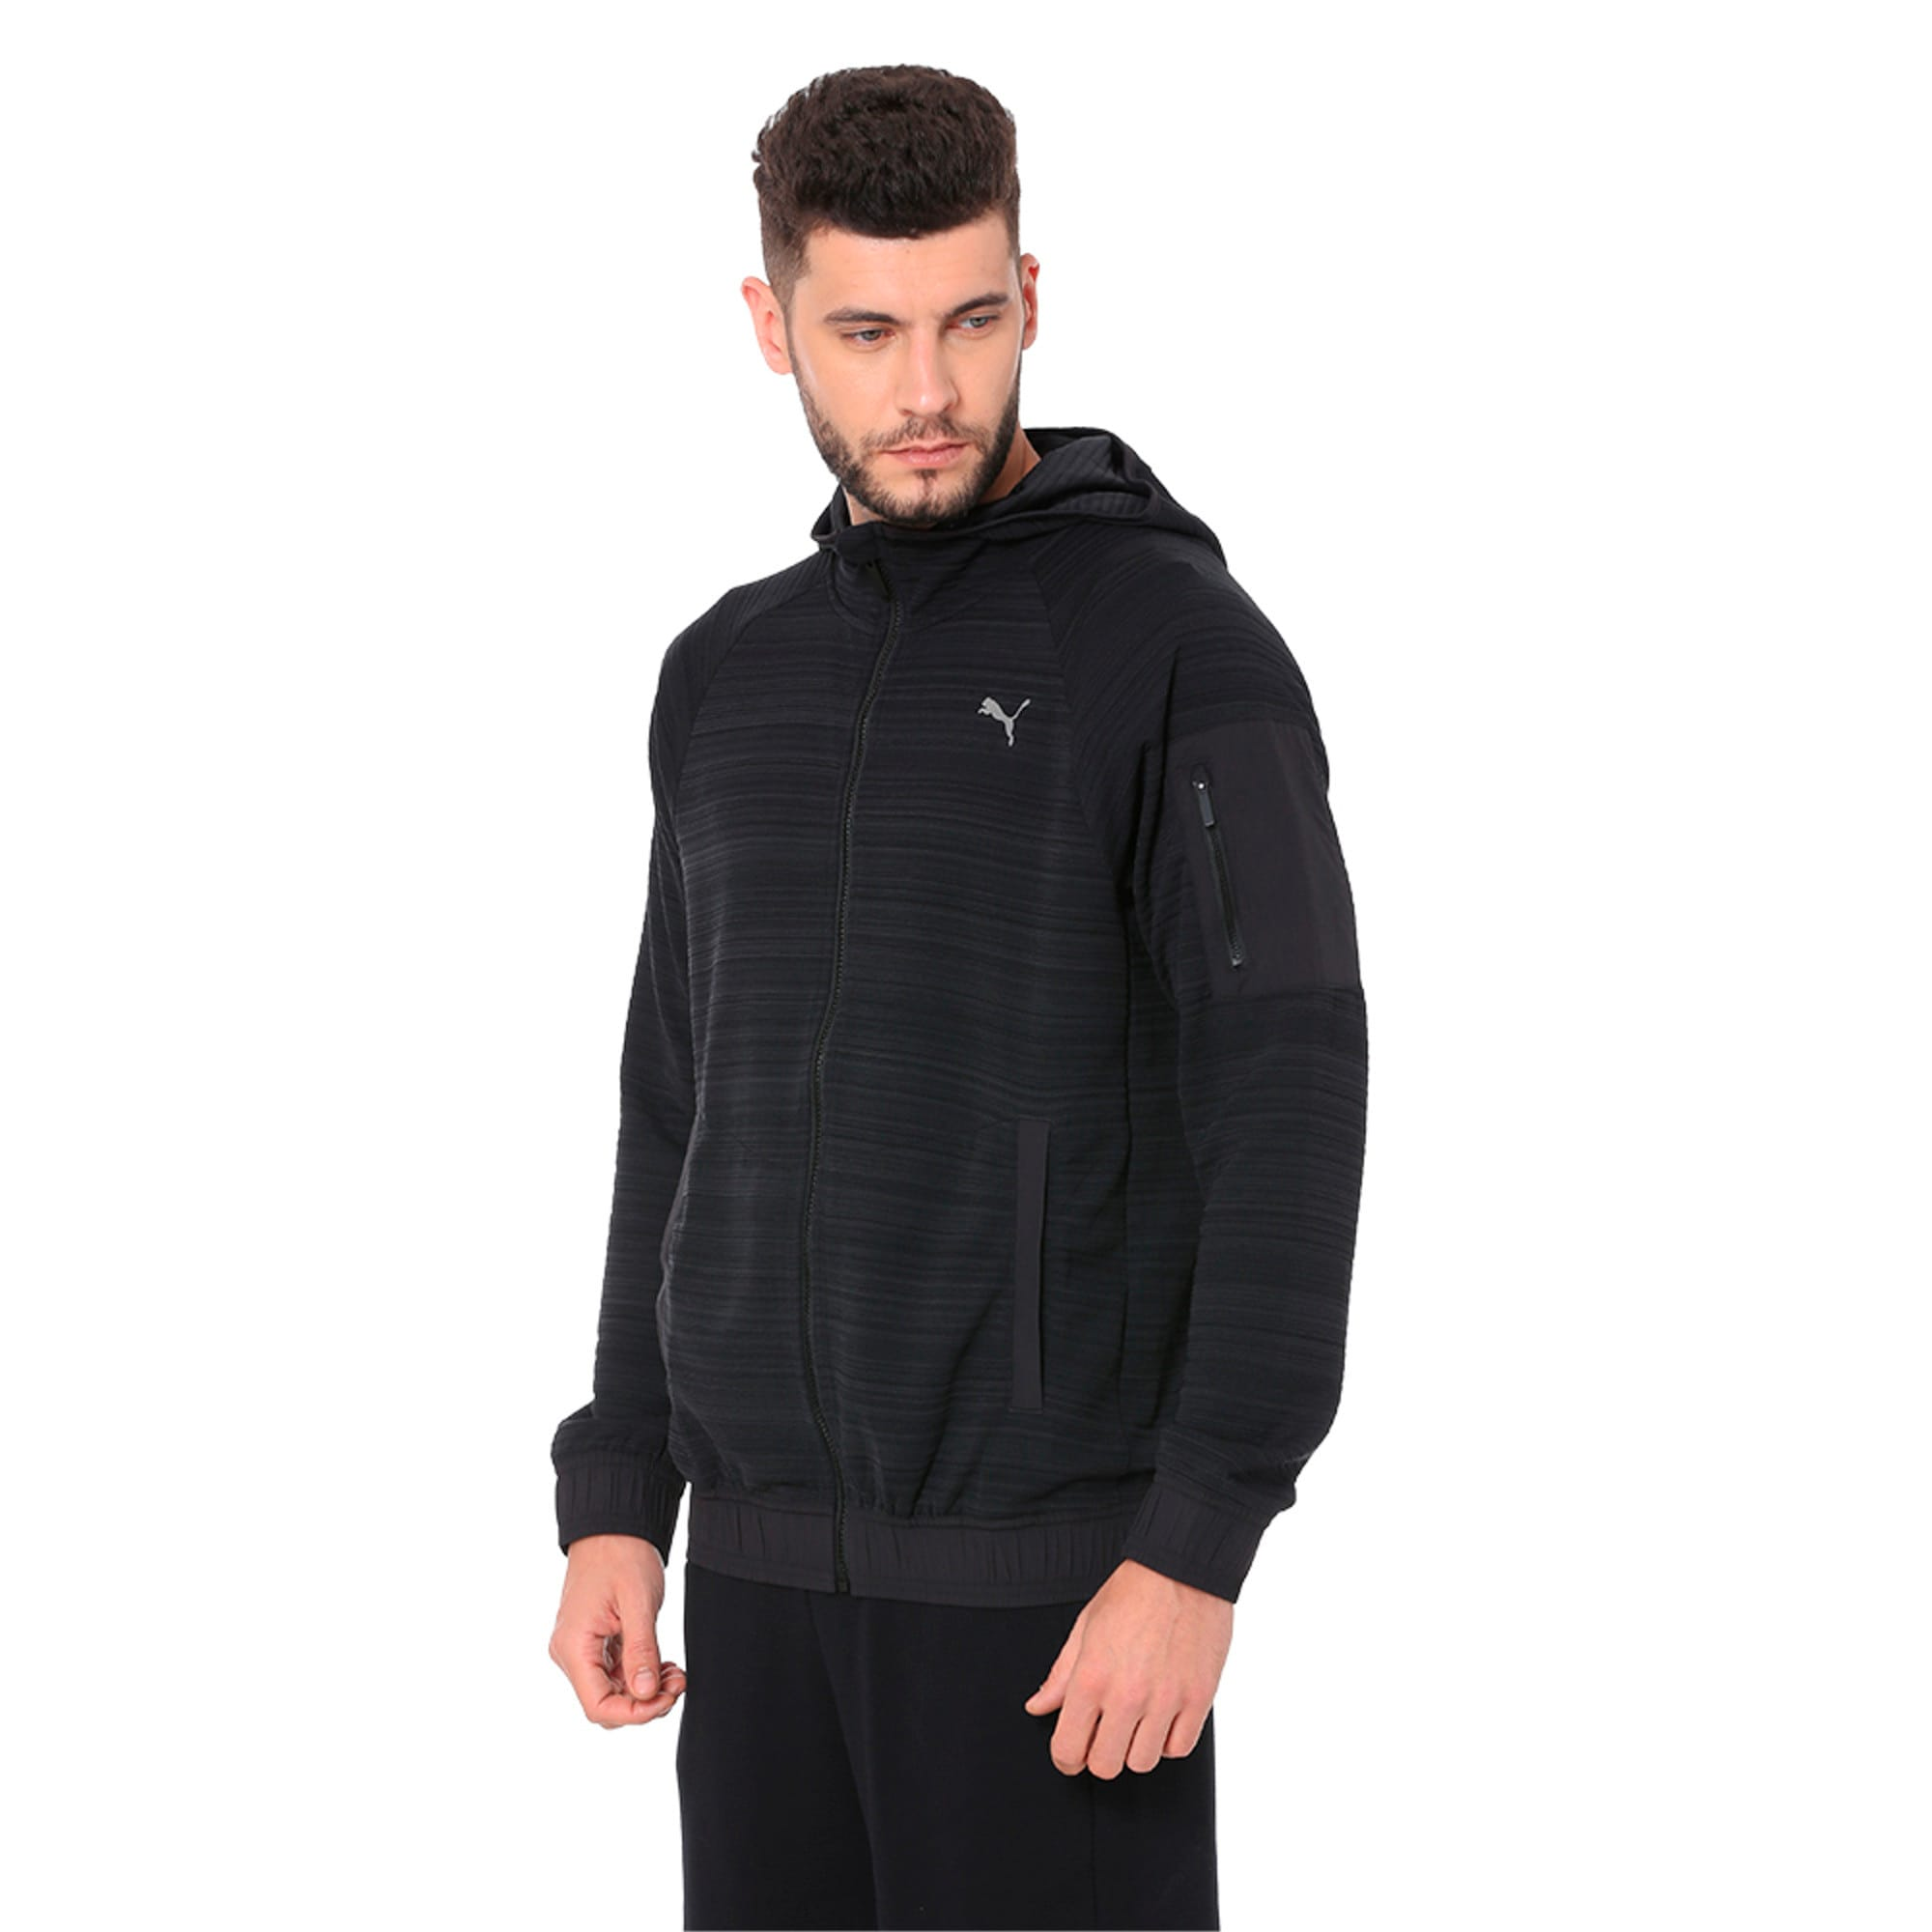 Thumbnail 2 of Energy Men's Full Zip Hoodie, Puma Black Heather, medium-IND